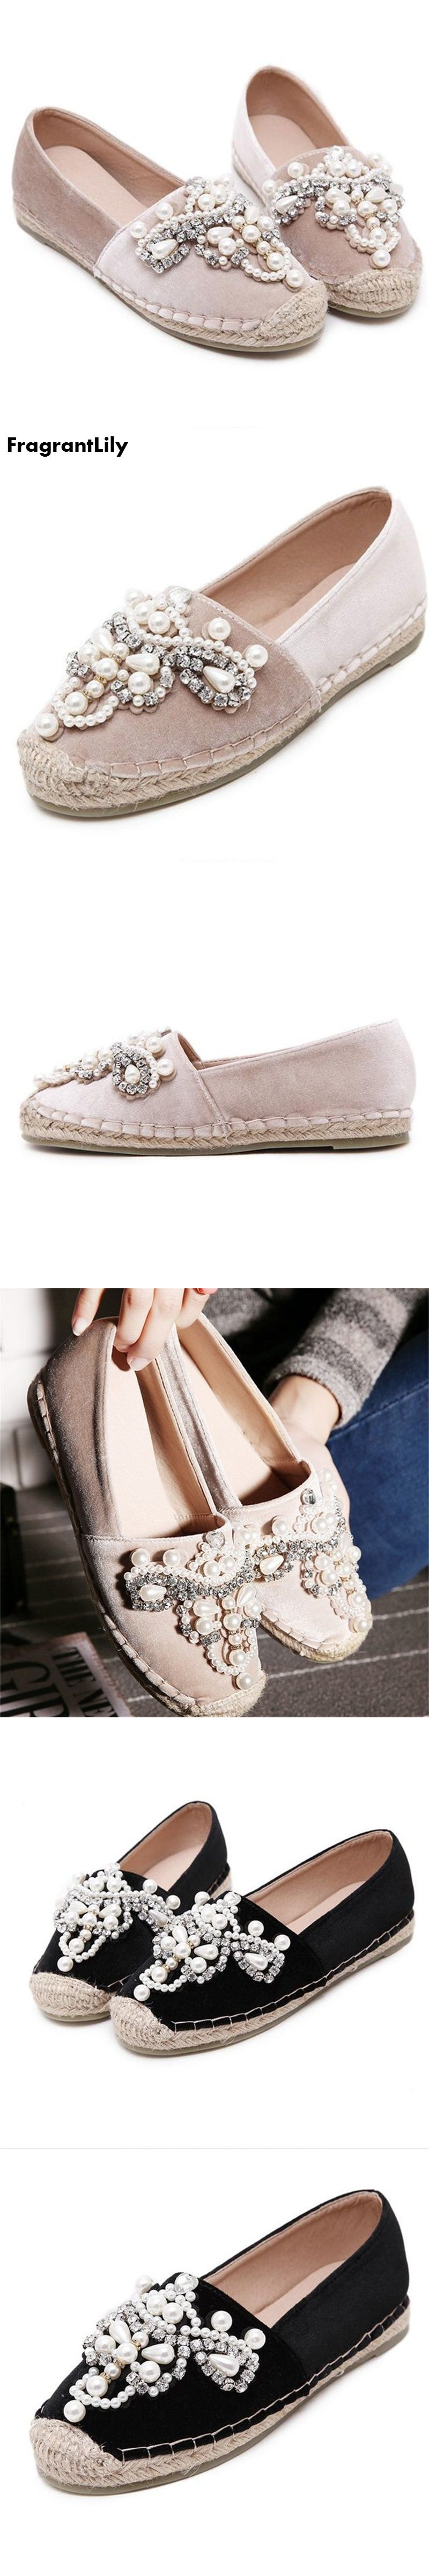 ed501f9c45d FragrantLily Autumn Women loafer Round Toe espadrilles Pearl ...